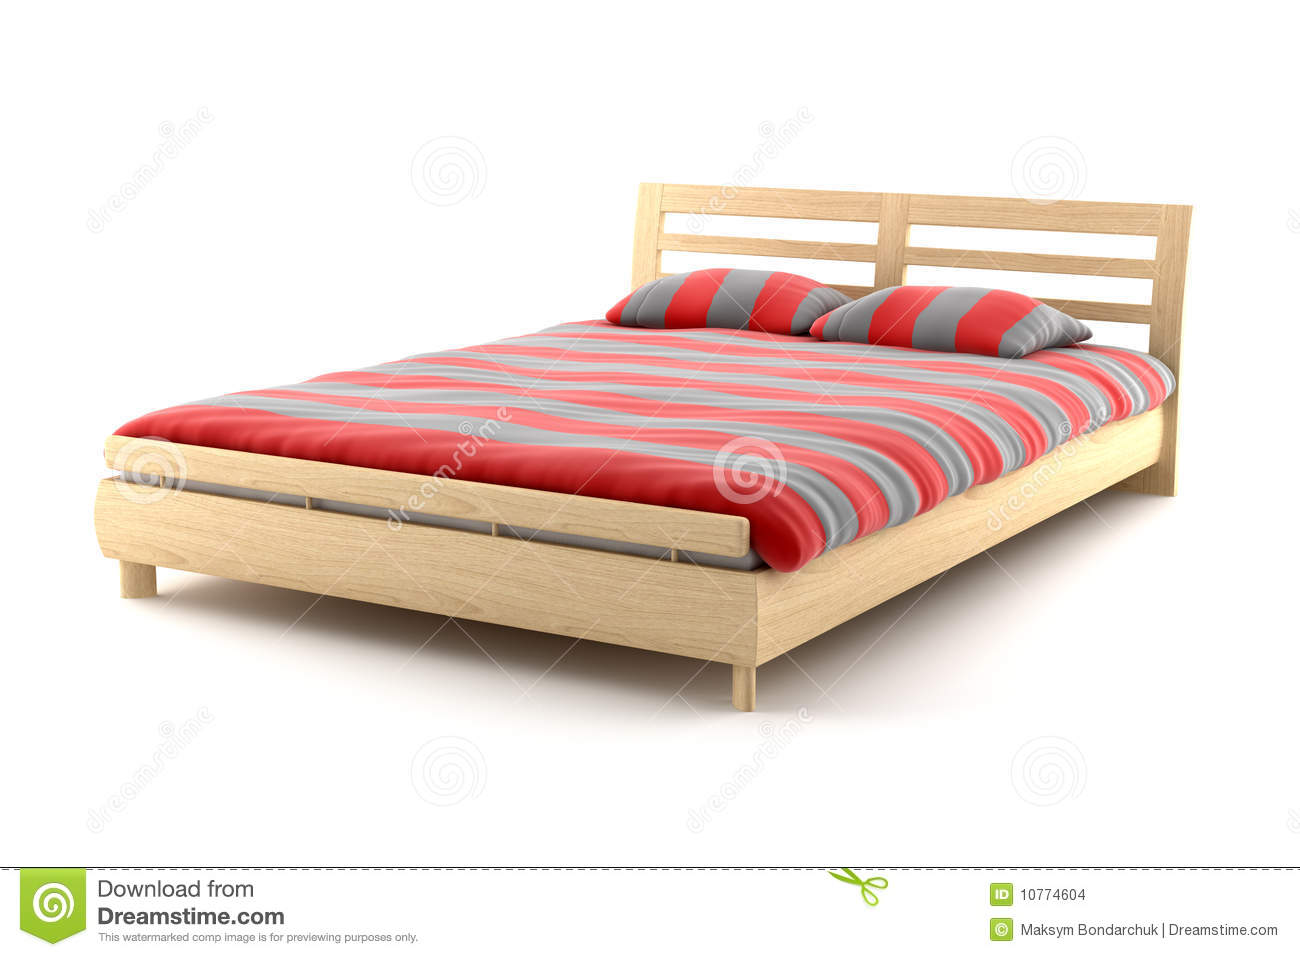 Wooden Bed Isolated On White Background Stock Images - Image: 10774604